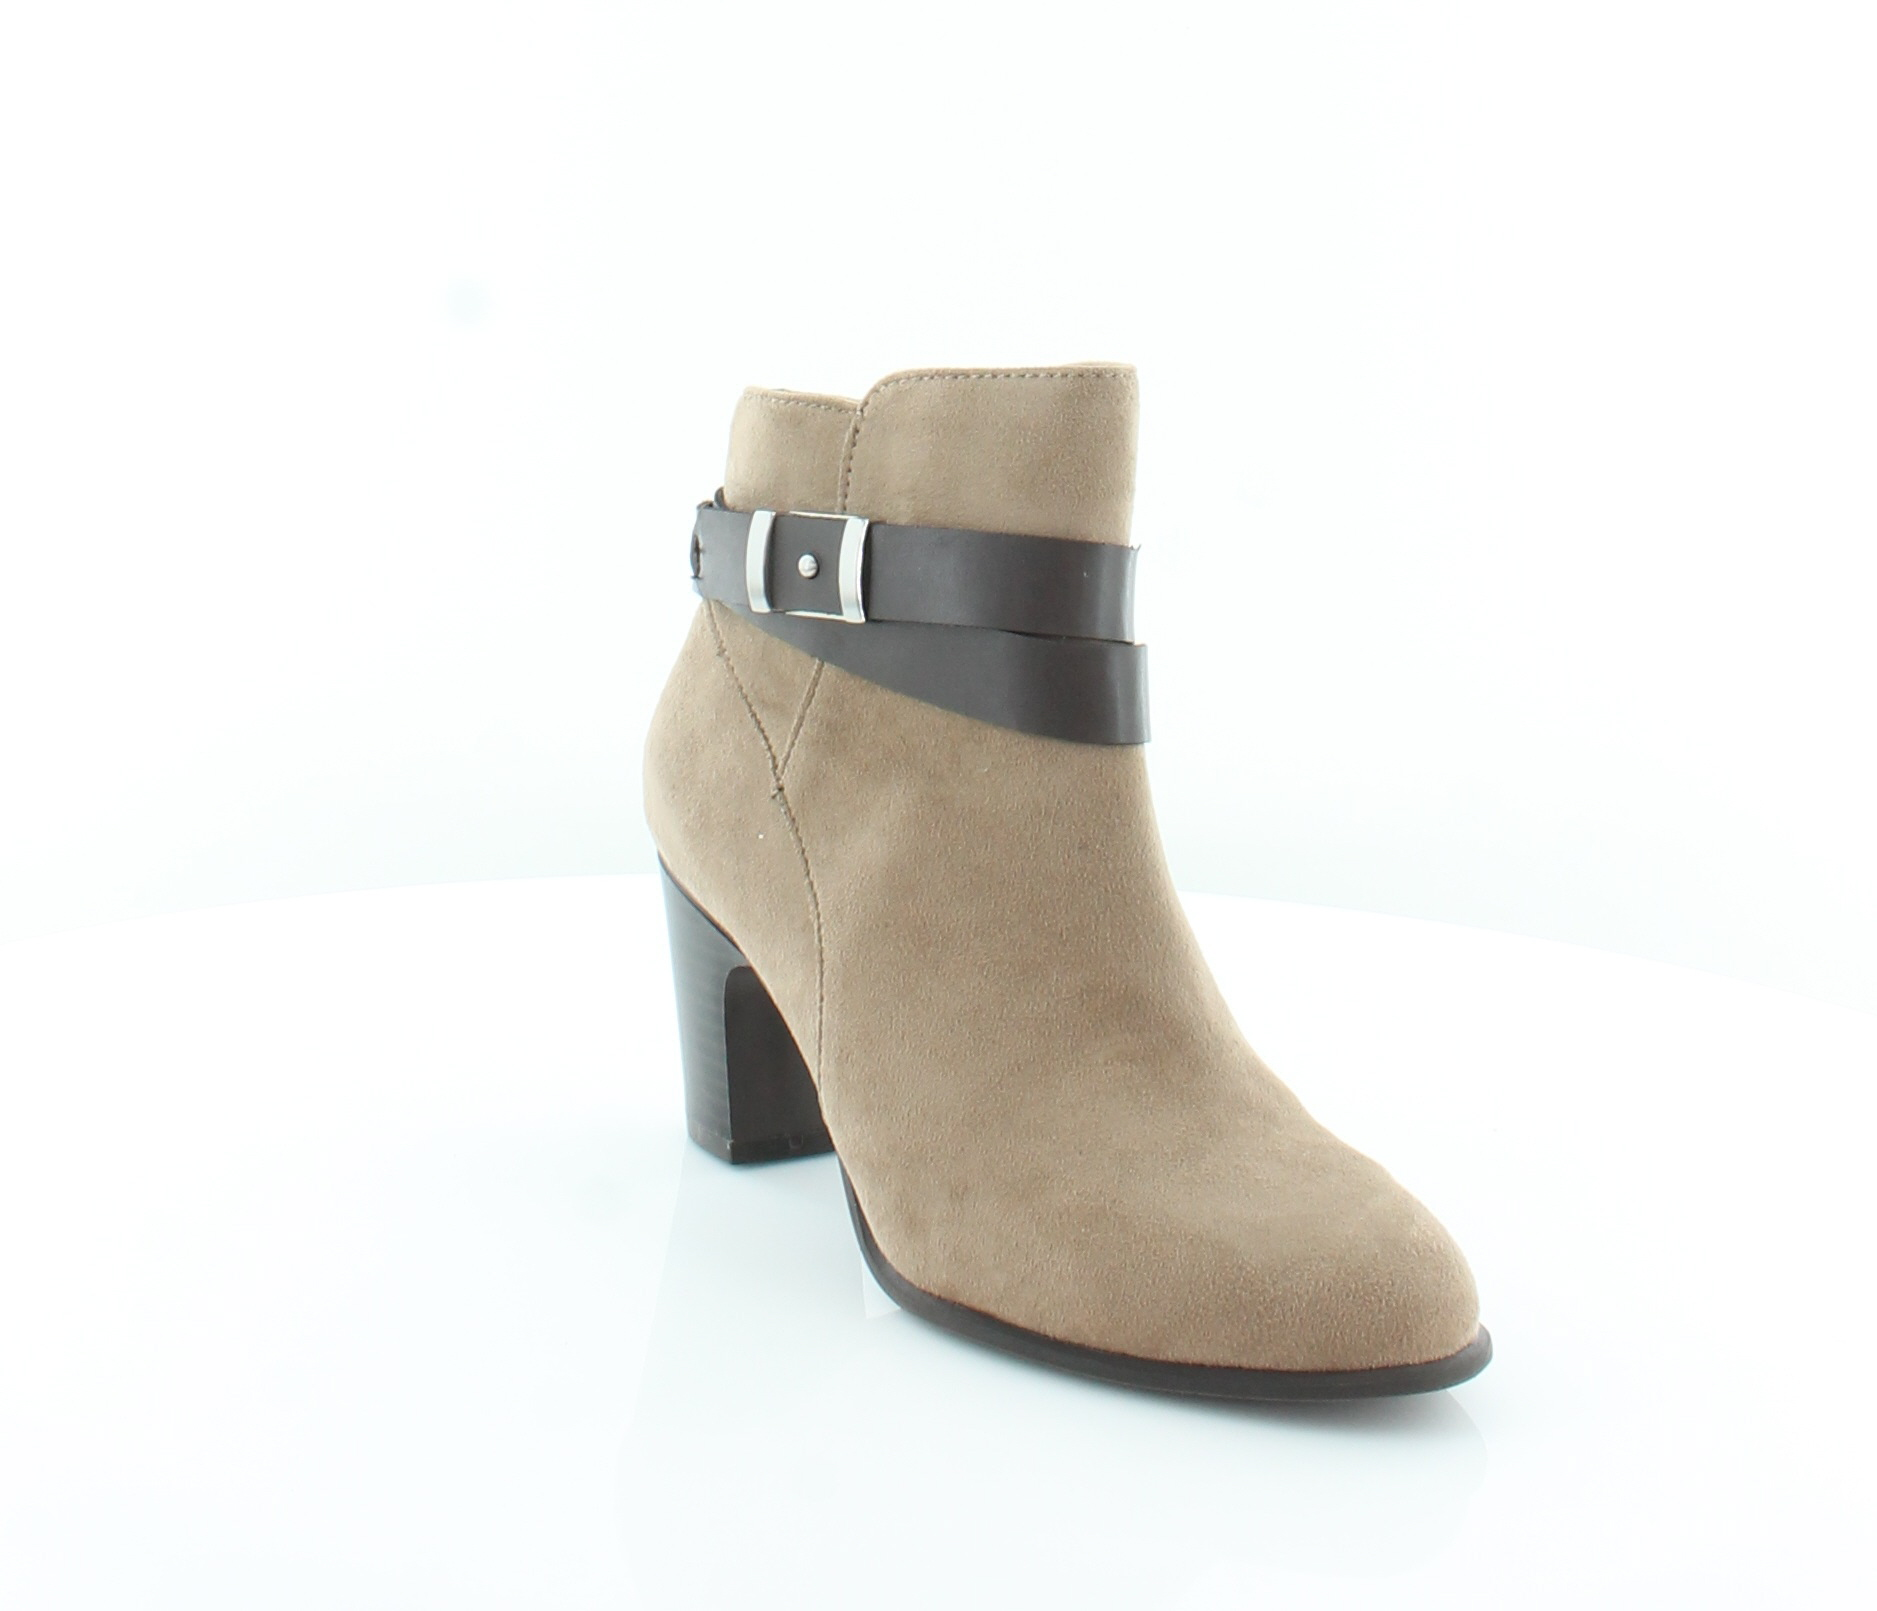 Giani Bernini New New New Calae Brown Womens shoes Size 6 M Boots MSRP  129.5 91c41e